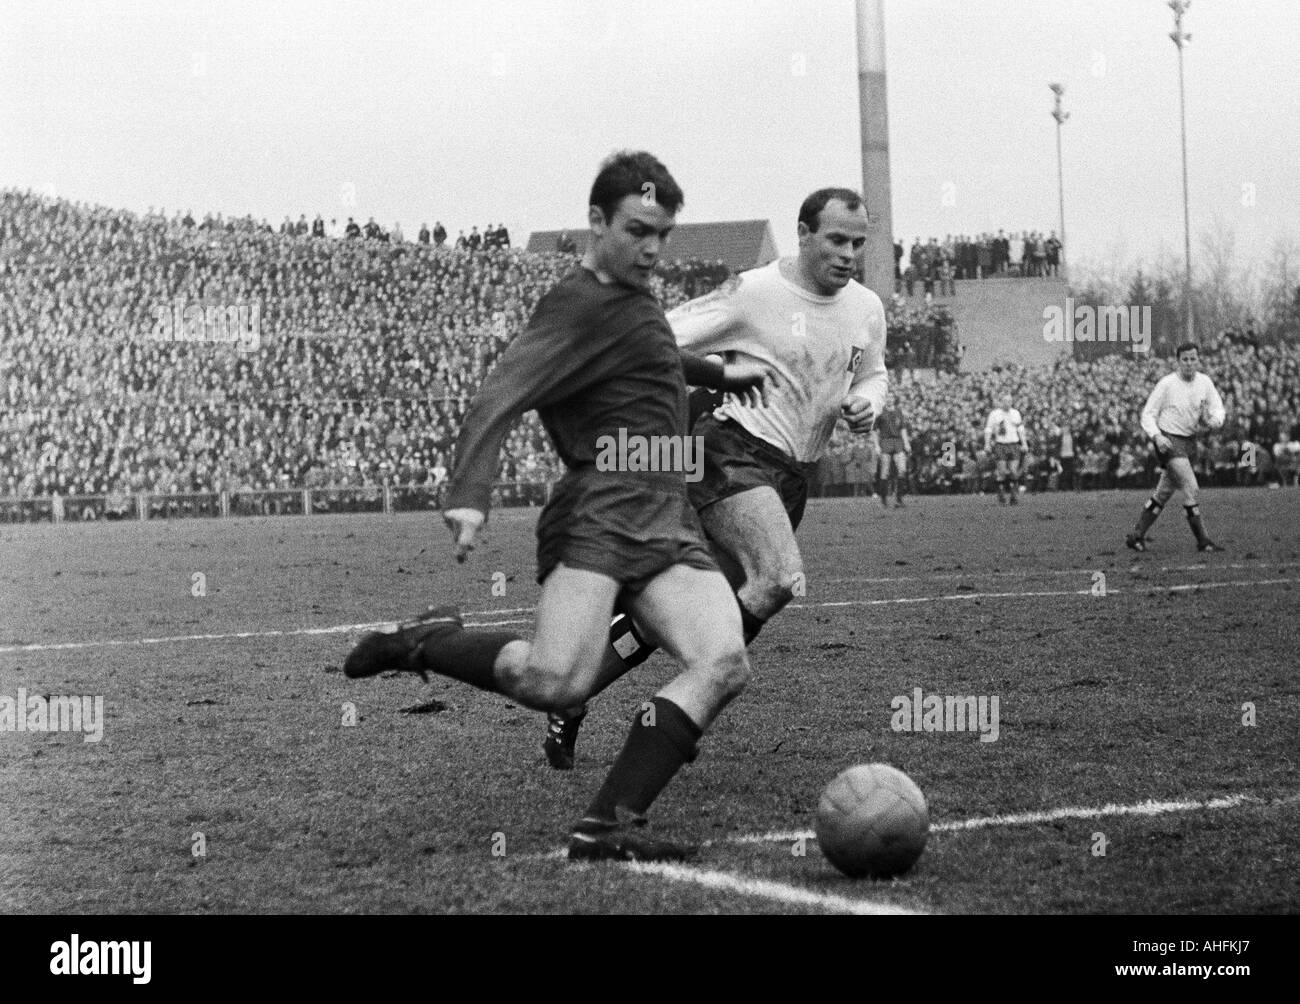 football, Bundesliga, 1966/1967, Boekelberg Stadium, Borussia Moenchengladbach versus Hamburger SV 4:2, scene of Stock Photo